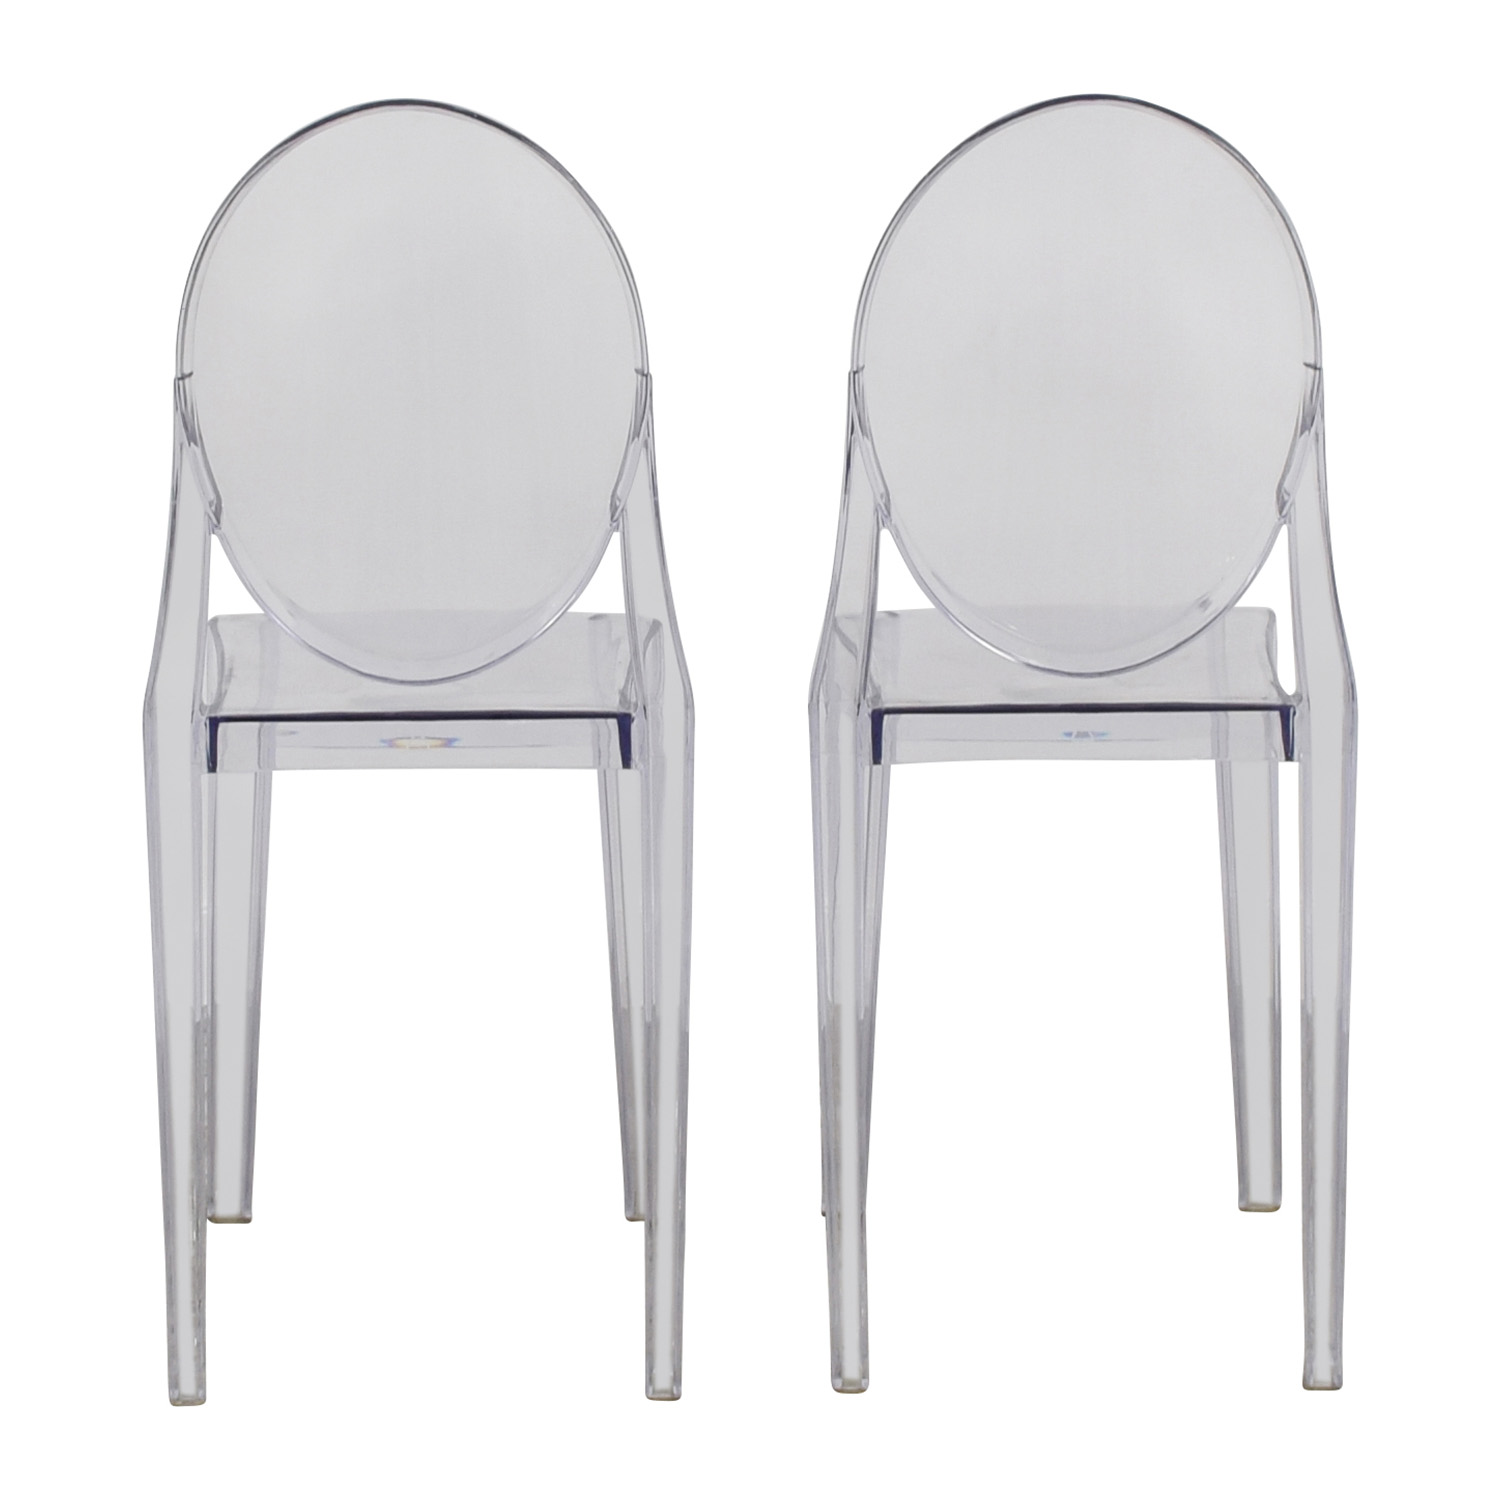 ... Shop Flash Furniture Ghost Side Chairs Flash Furniture ...